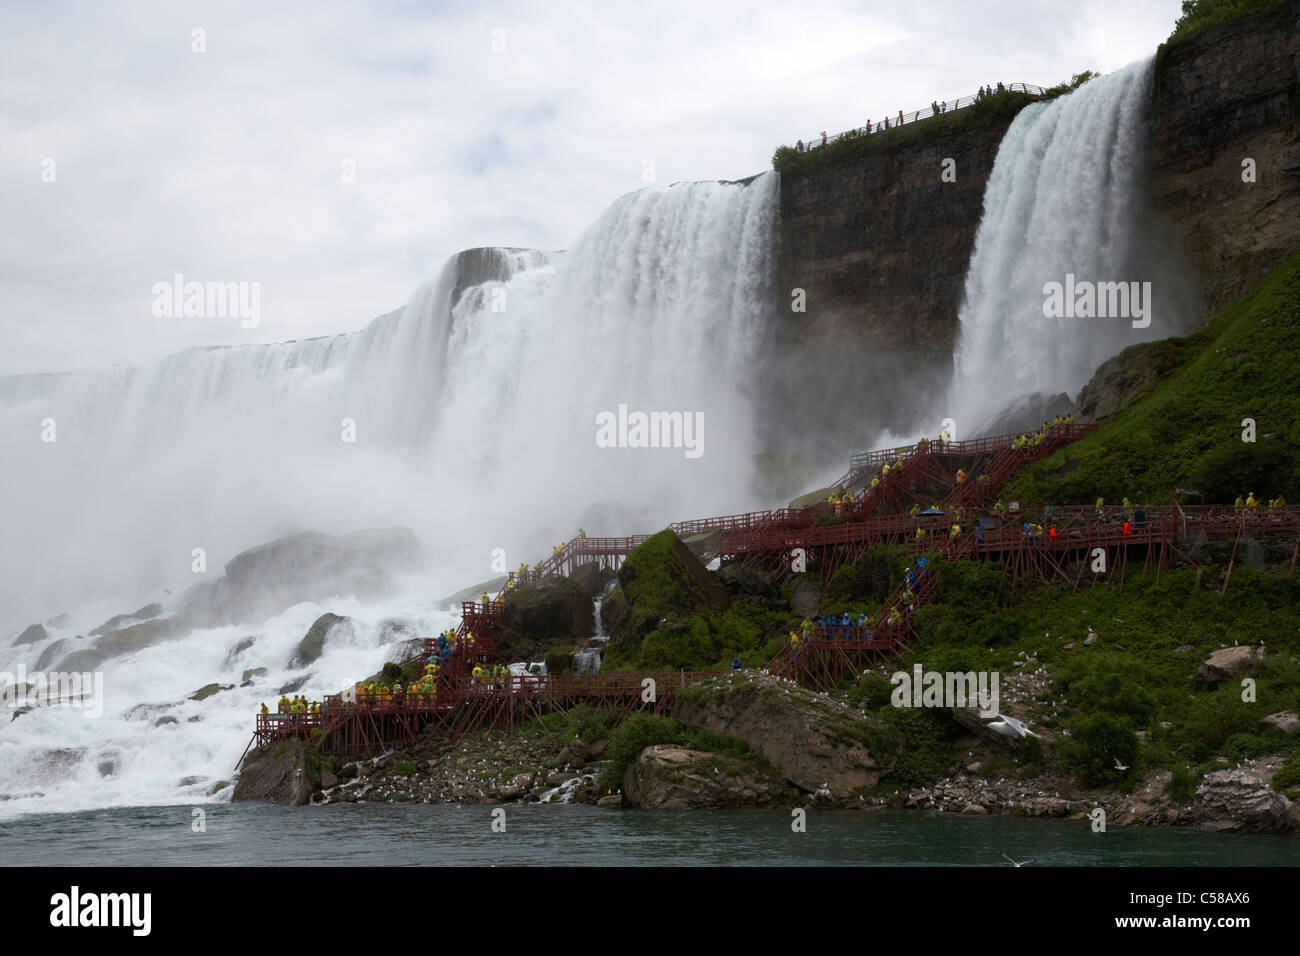 american and bridal veil falls with cave of the winds walkway niagara falls new york state usa - Stock Image